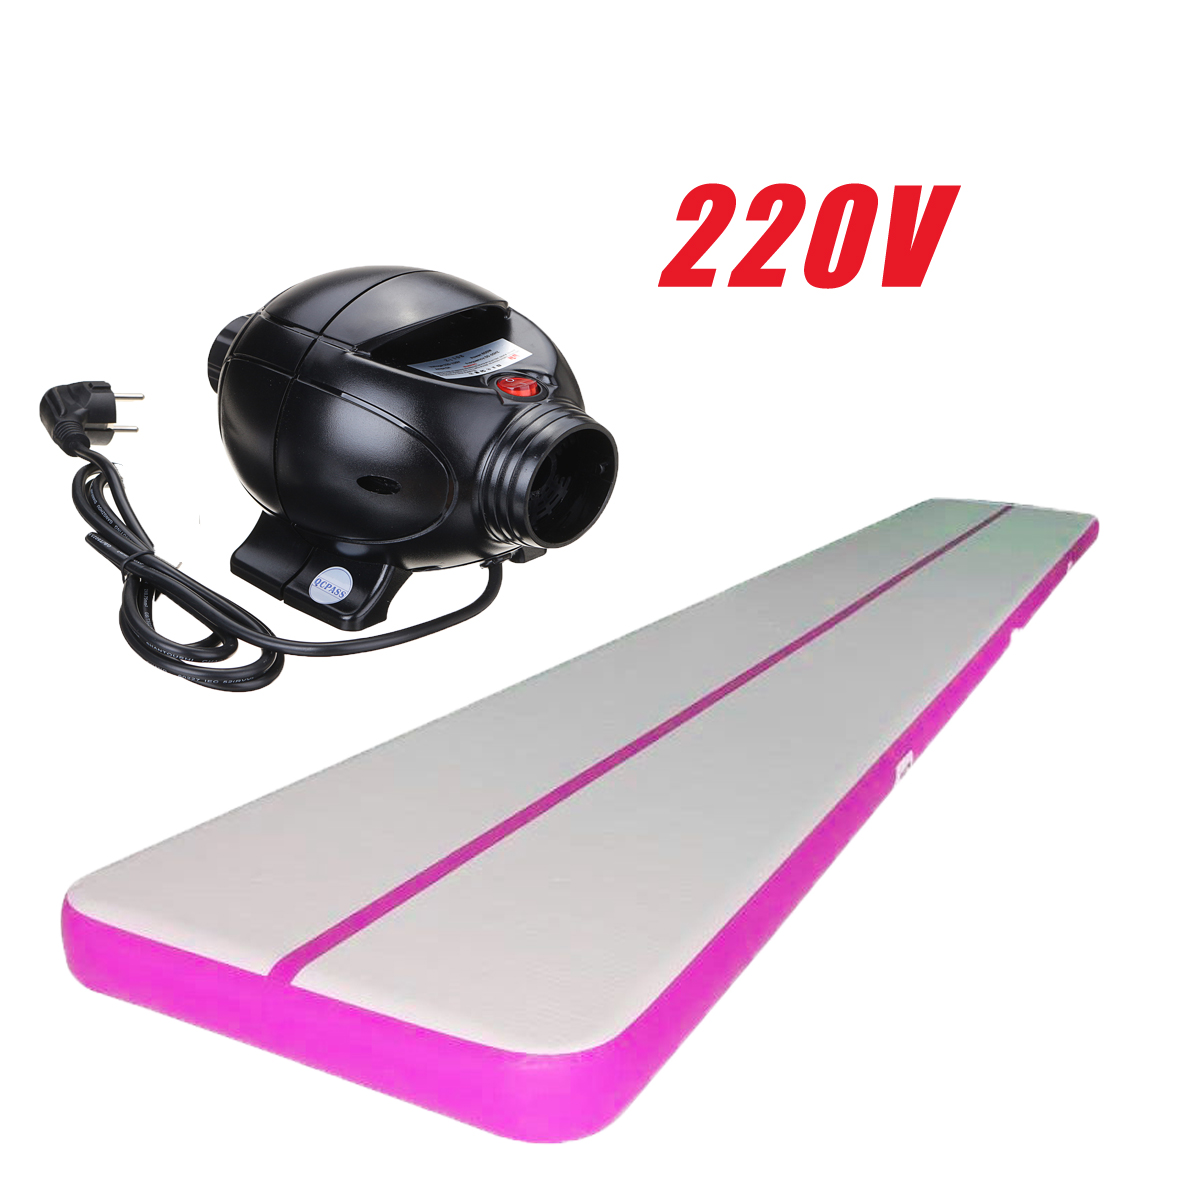 Inflatable Balance Air Track Floor Pad Gymnastics Tumbling Yoga Mat Exercise Practice Training Jumping Pad with 110V/220V Pump,Home Use,Outdoor